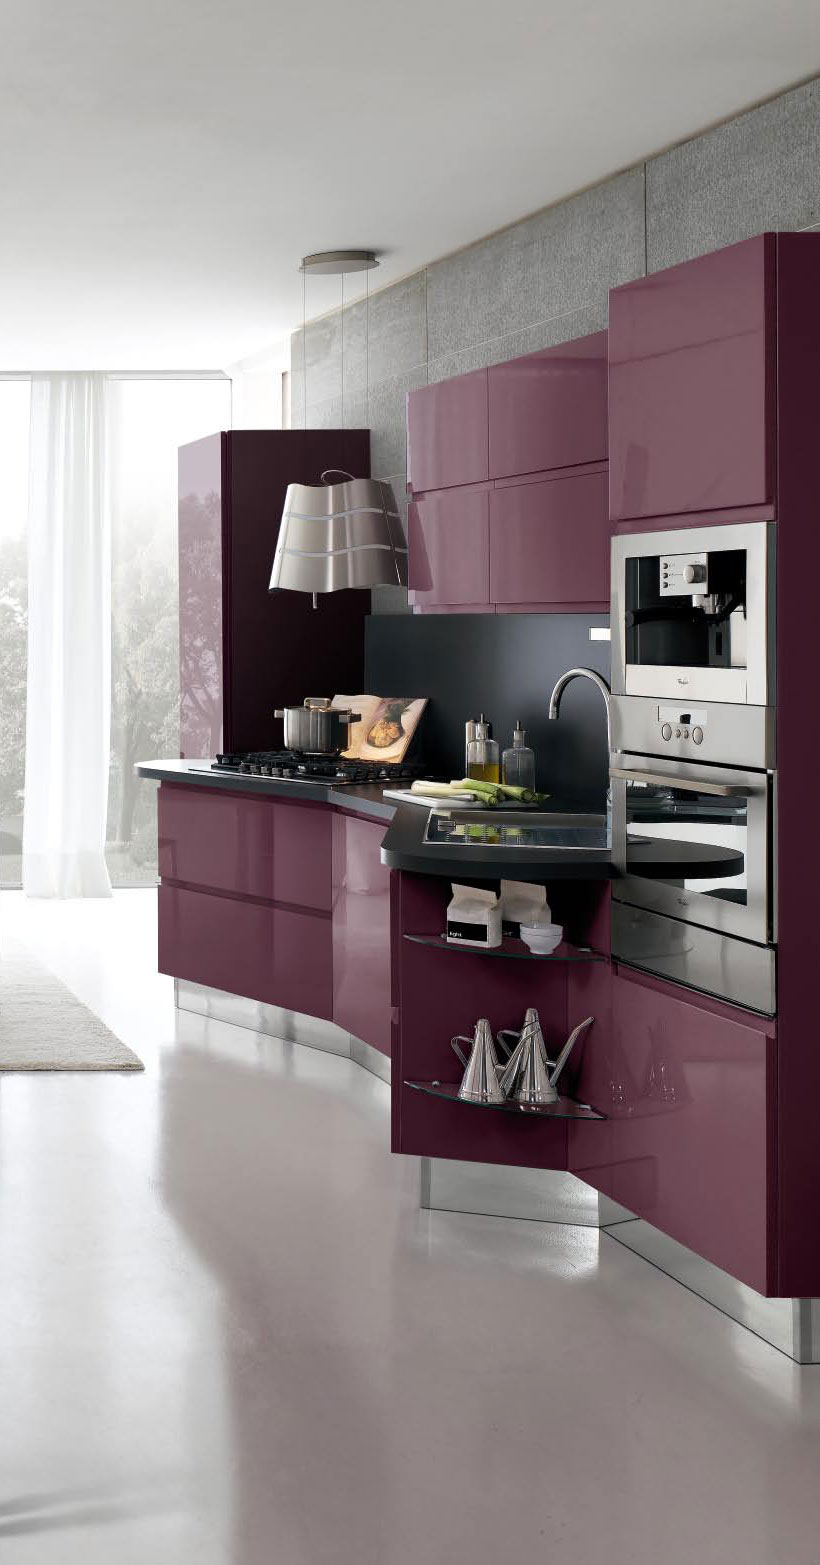 kitchens modern kitchen cabinets modern kitchen design modern kitchen